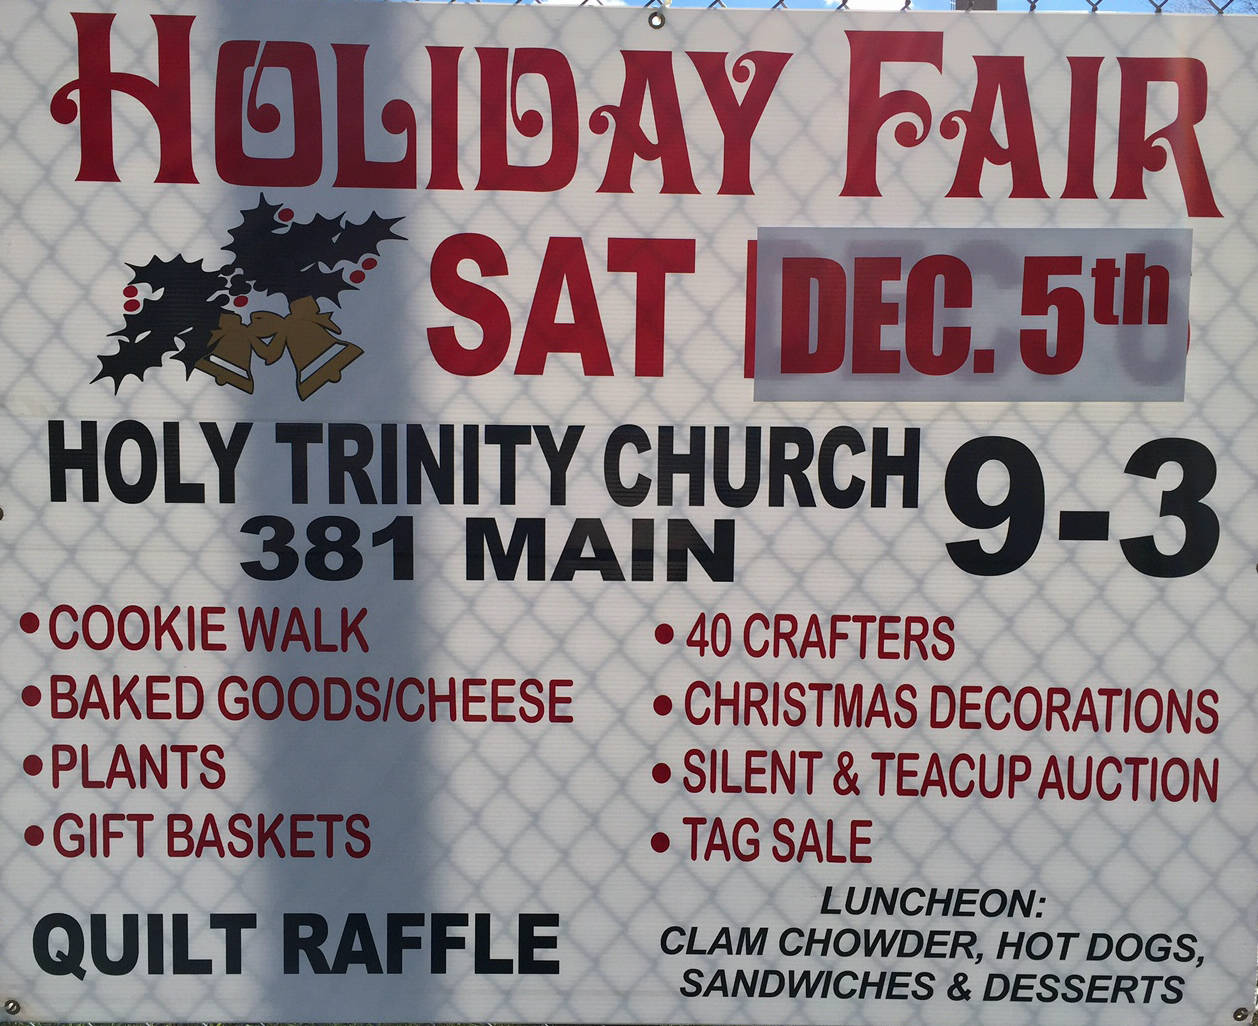 Holy trinity church middletown ct holiday fair decembe for Craft fairs in ct december